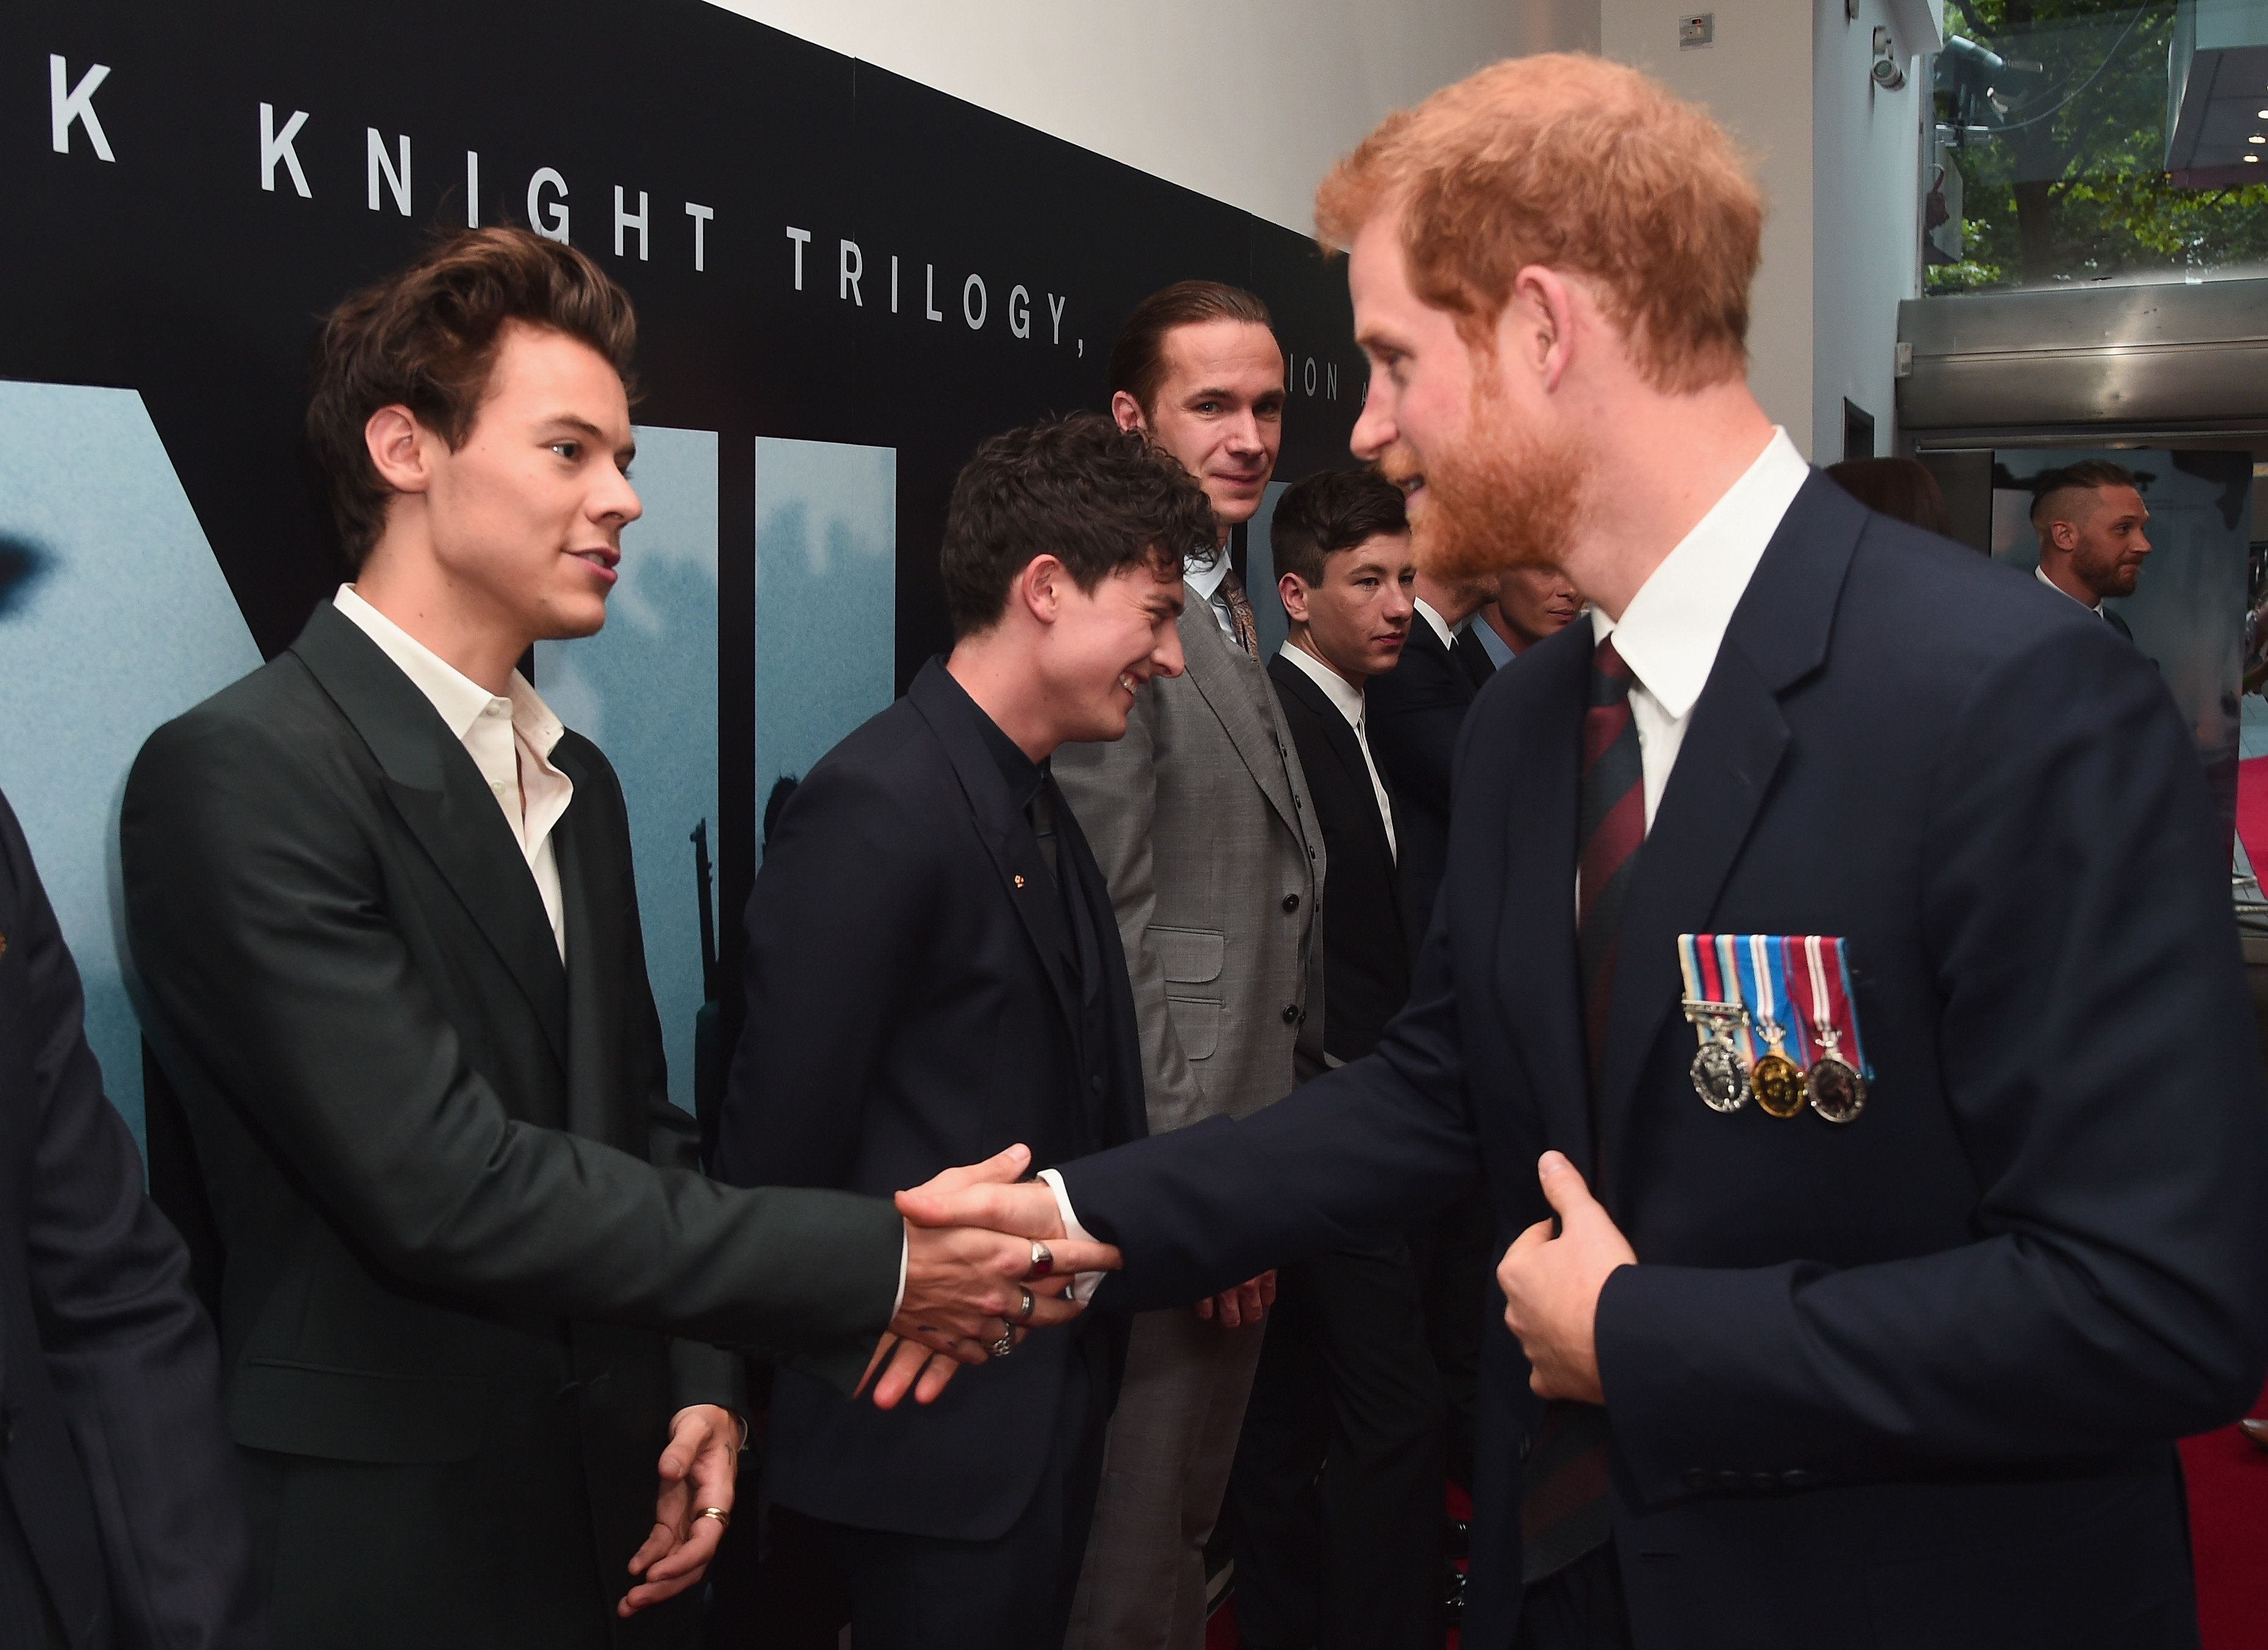 LONDON, ENGLAND - JULY 13:  (L-R) Actors Harry Styles and Aneurin Barnard and Prince Harry attend the 'Dunkirk' World Premiere at Odeon Leicester Square on July 13, 2017 in London, England.   (Photo by Eamonn M. McCormack - WPA Pool/Getty Images)